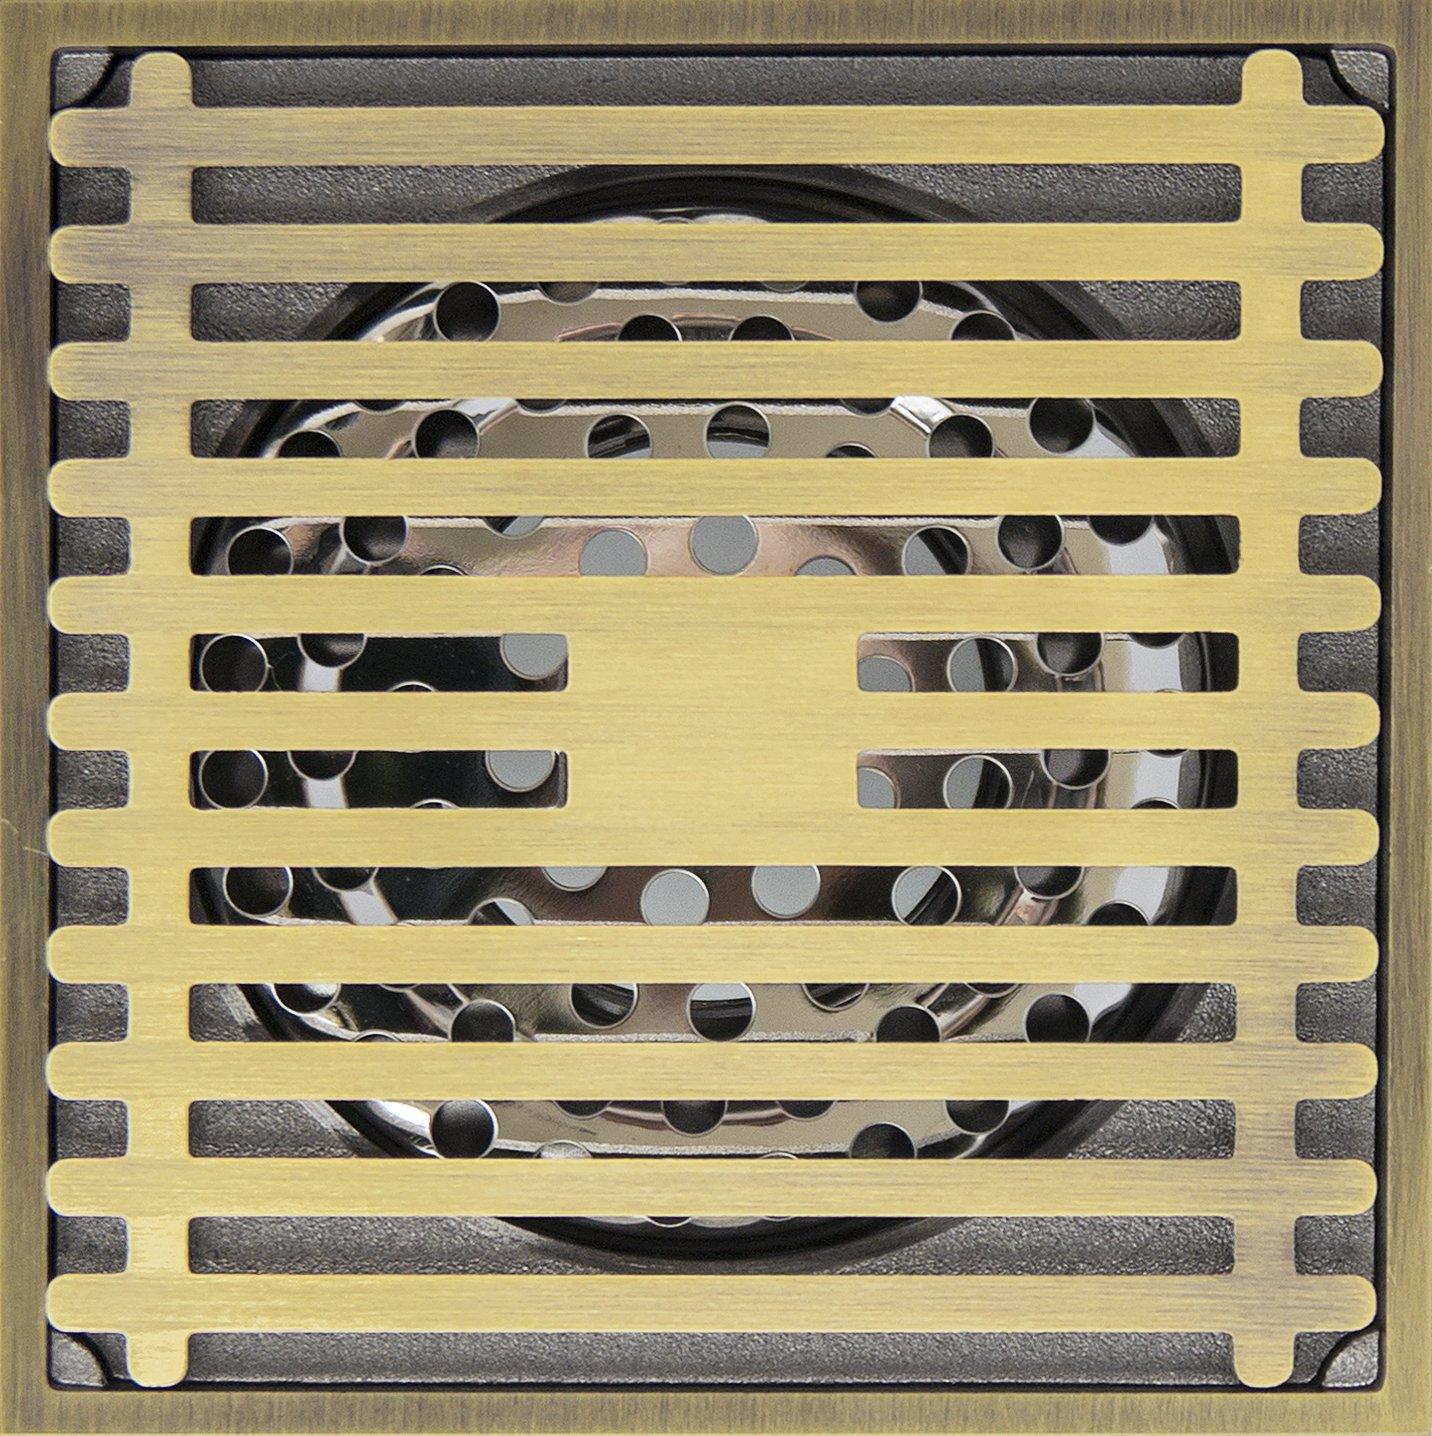 Square Shower Brass Floor Drain,Antique Brass plating Finish Anti-clogging for Kitchen, Washroom, Bathroom,Balcony and Baseme. Striping design with Large displacement